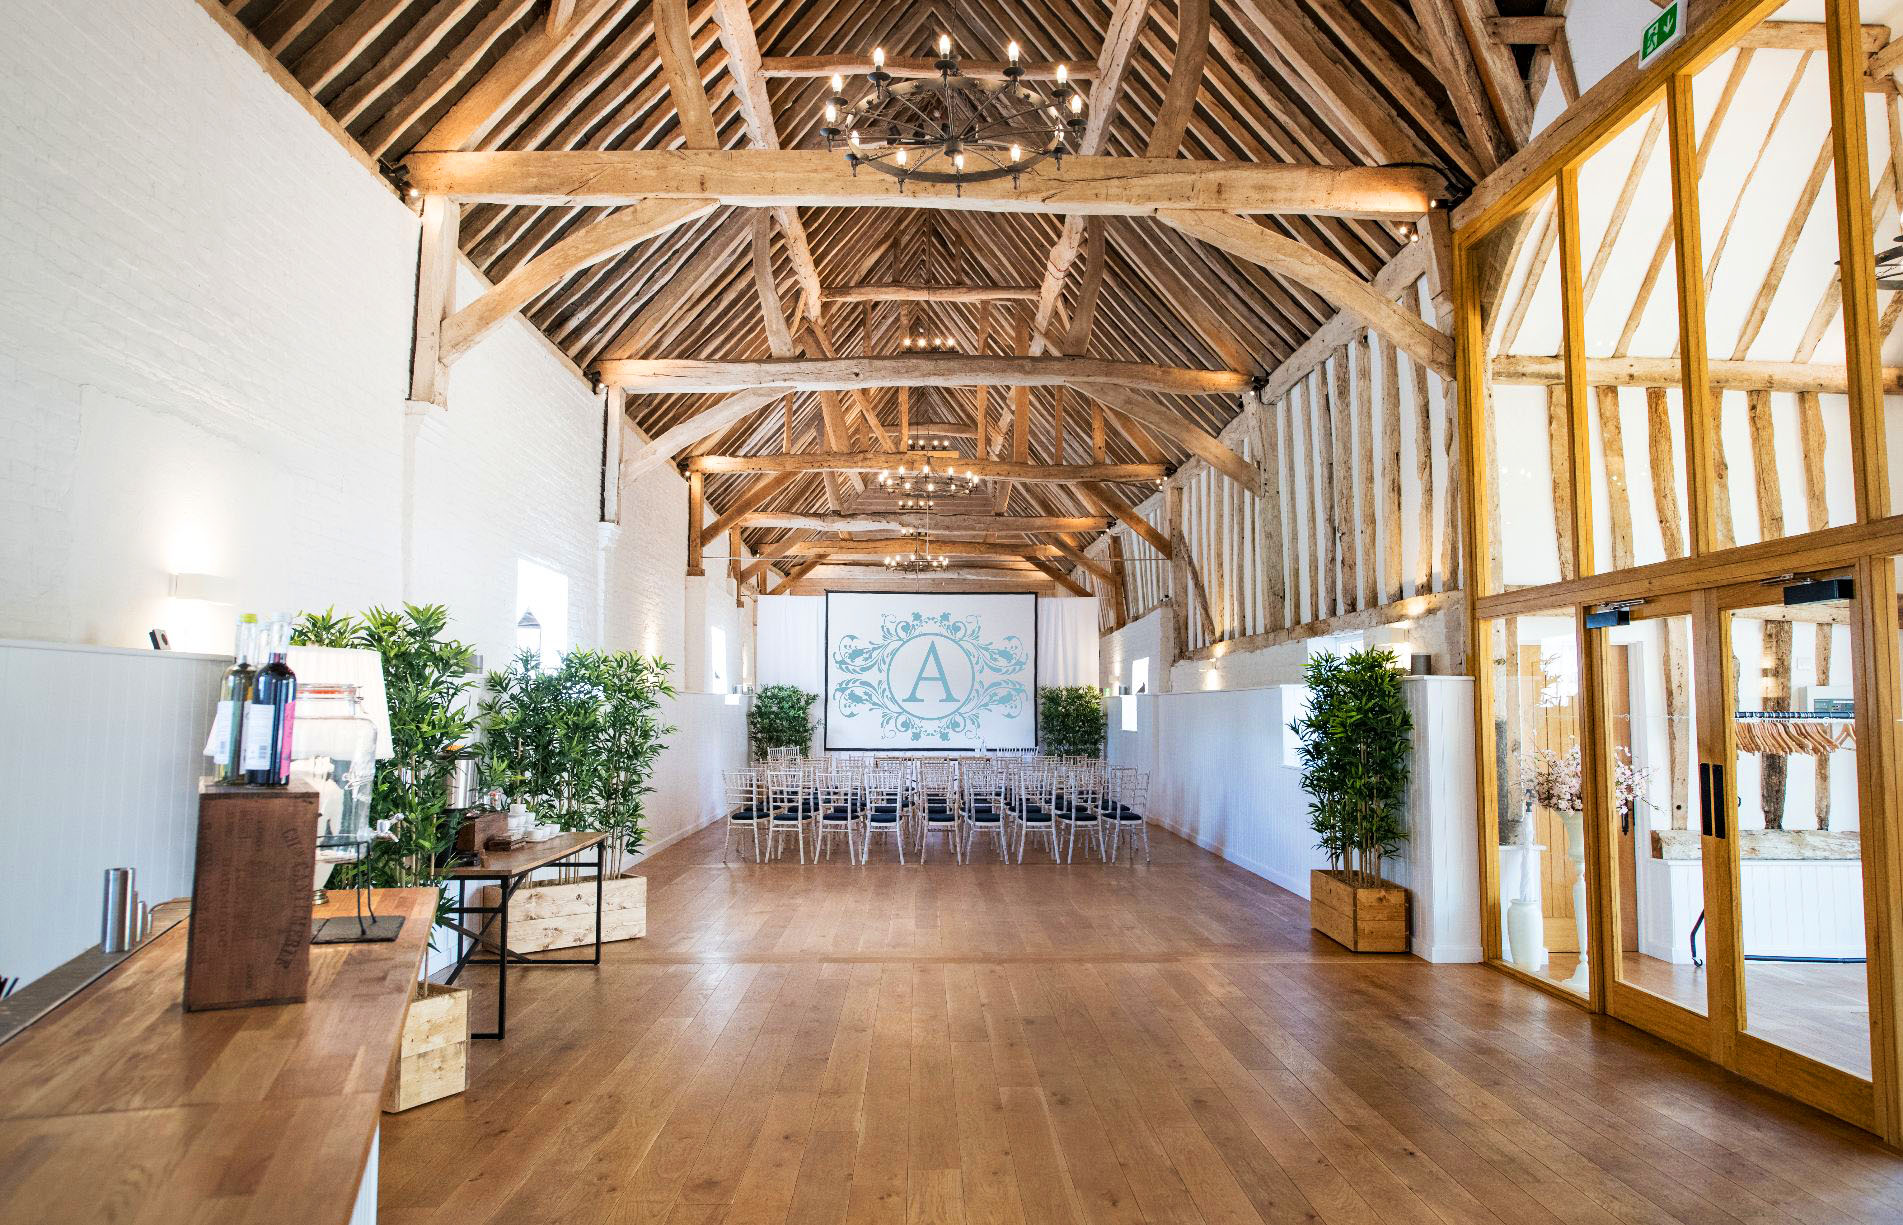 Corporate at The Barn at Alswick